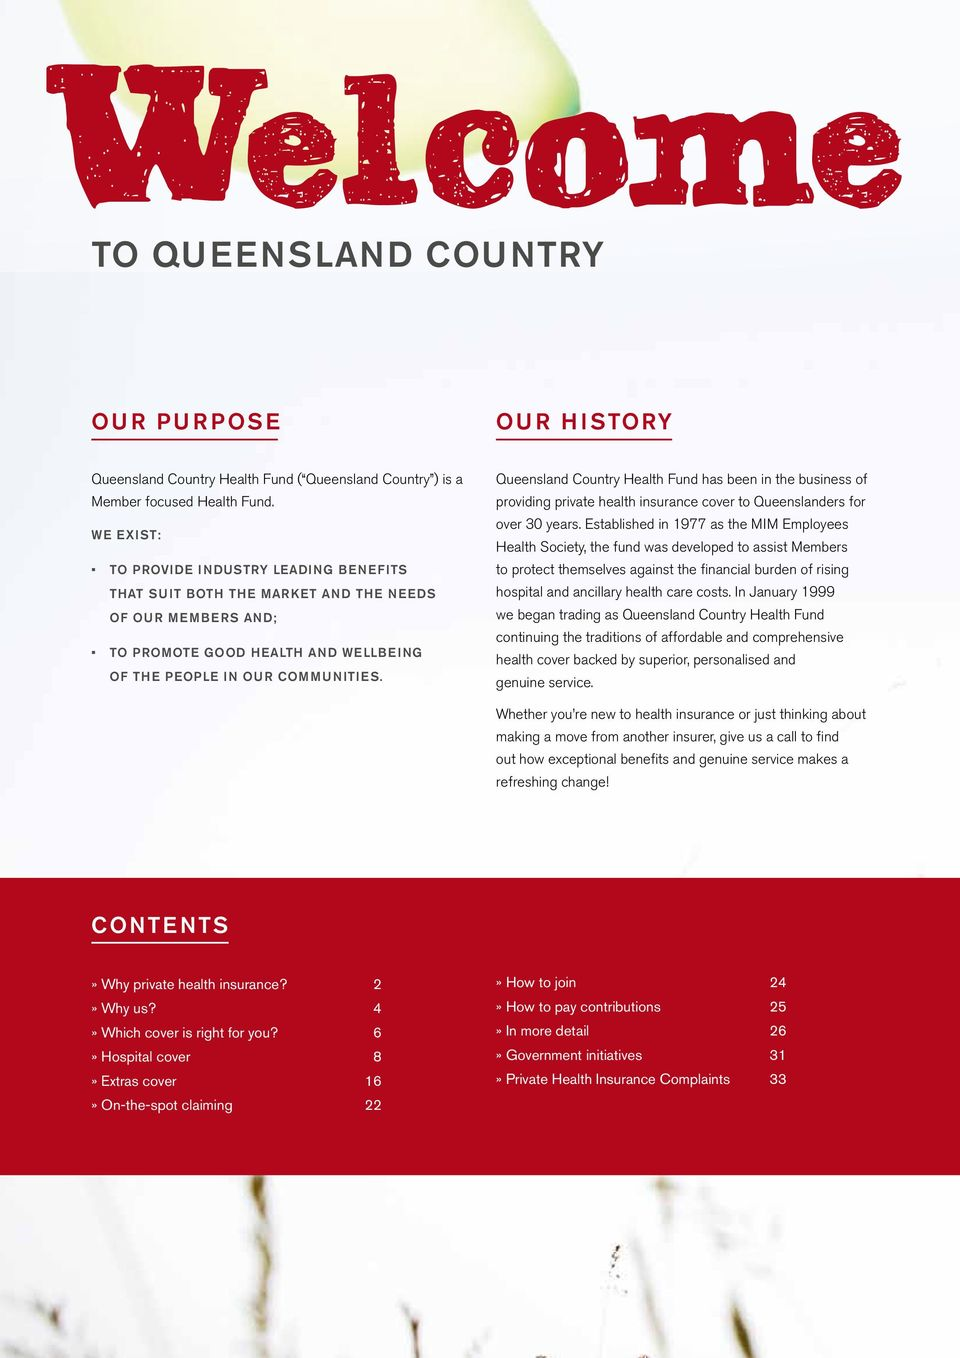 Queensland Country Health Fund has been in the business of providing private health insurance cover to Queenslanders for over 30 years.